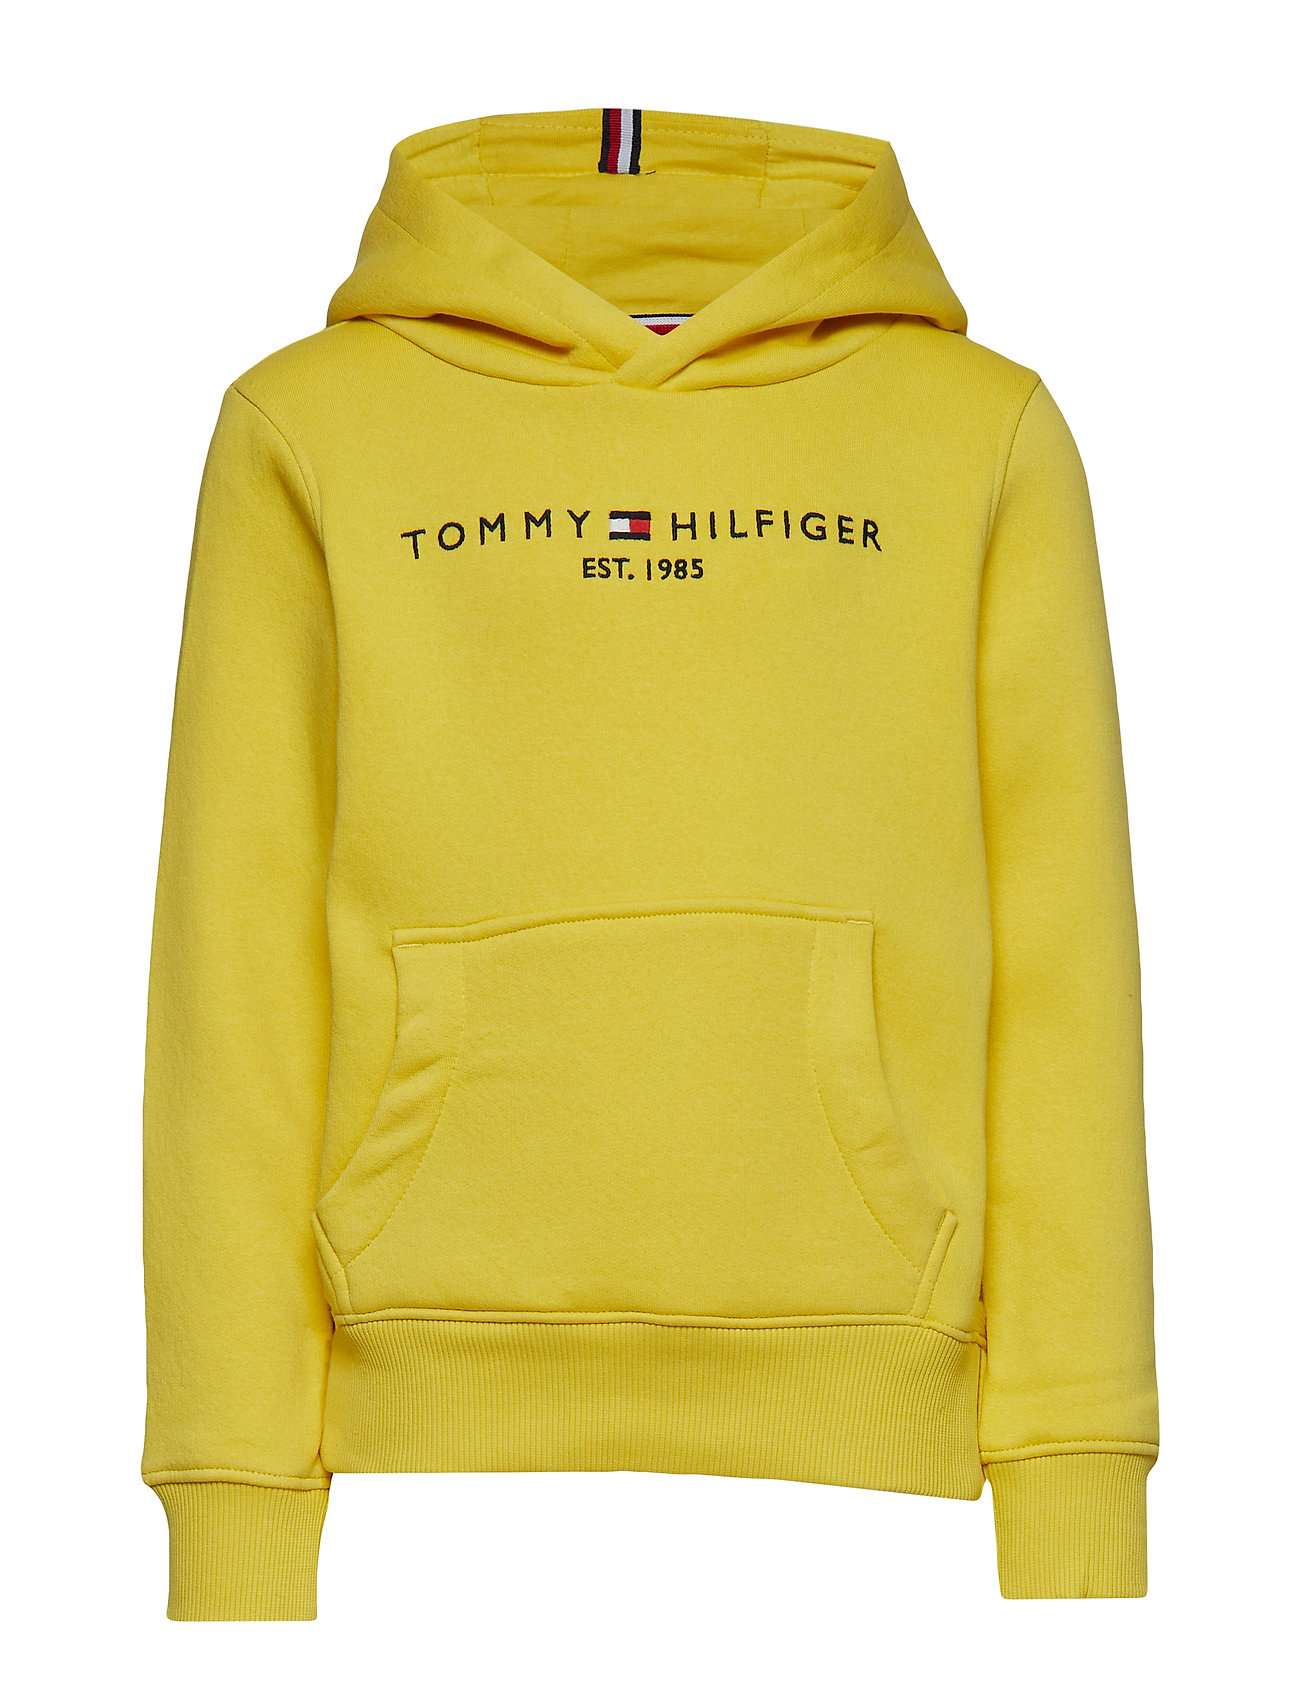 Tommy Hilfiger ESSENTIAL HOODIE SET 1 - ASPEN GOLD